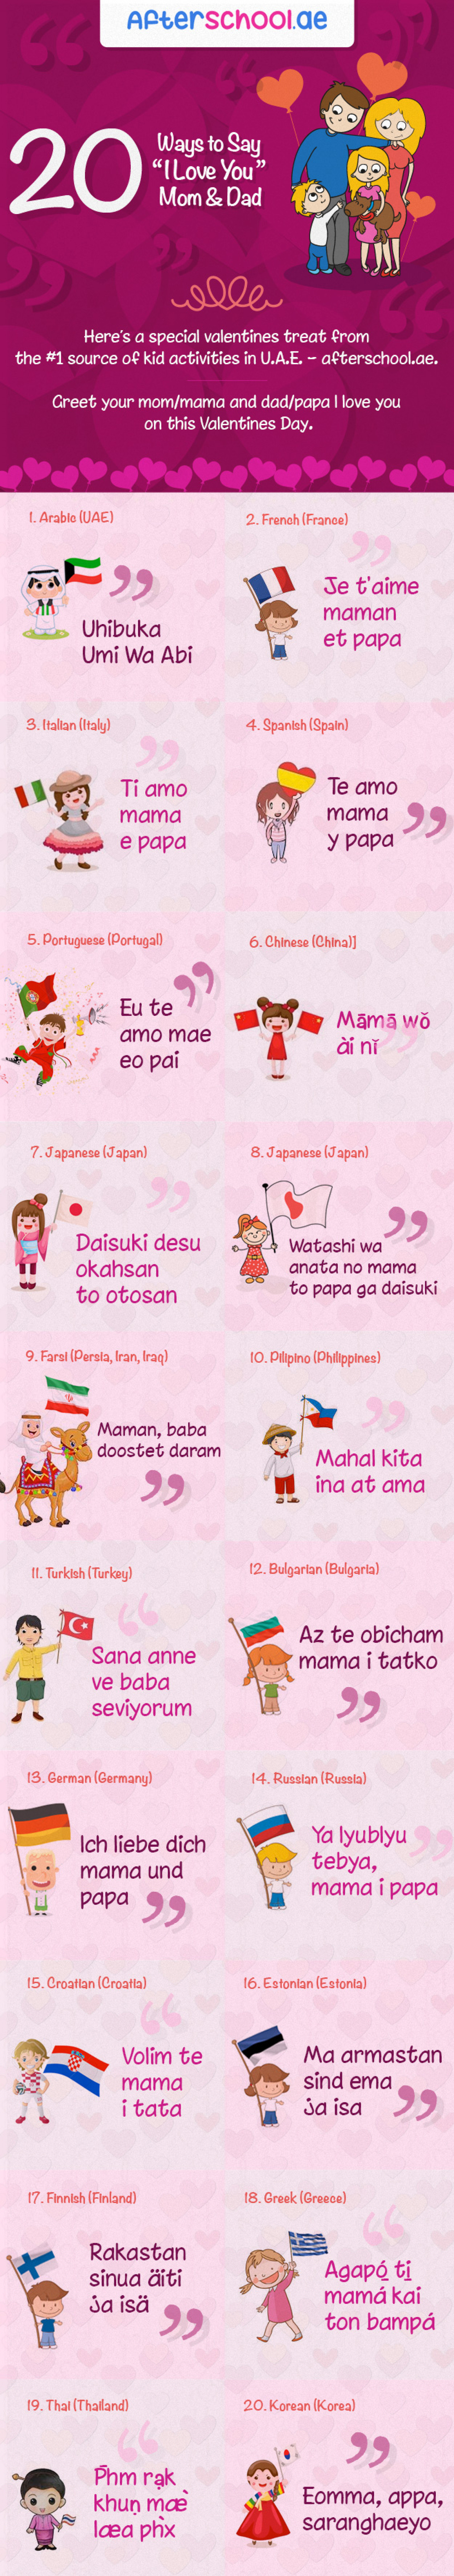 20 Ways To Say I Love You Mom Dad This Valentines Infographic